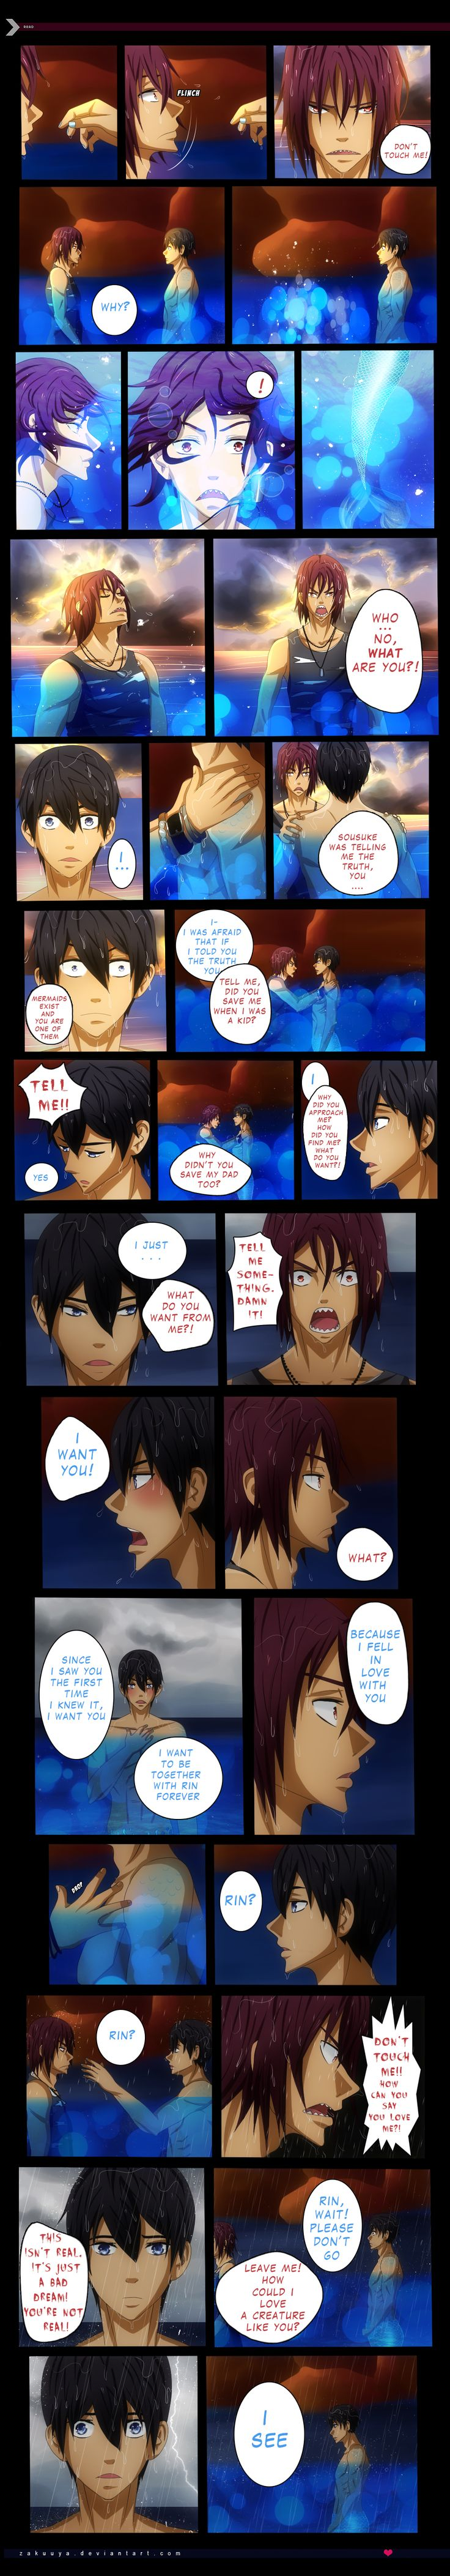 RinHaru: A Mermaid Tale 22 by Zakuuya.deviantart.com on @DeviantArt